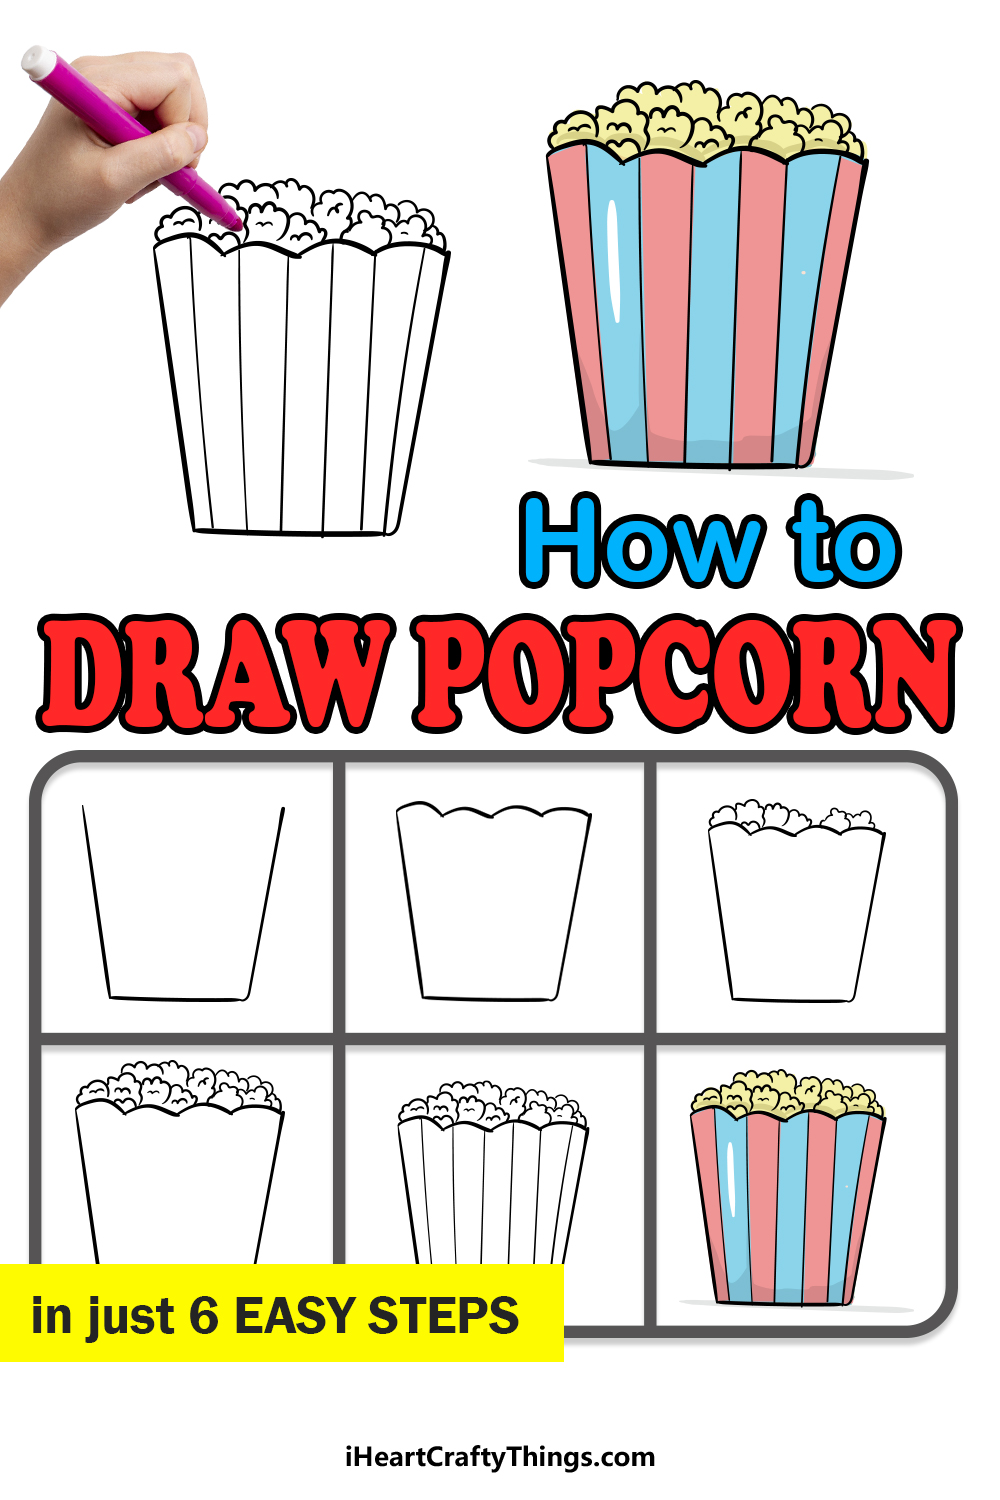 how to draw popcorn in 6 easy steps